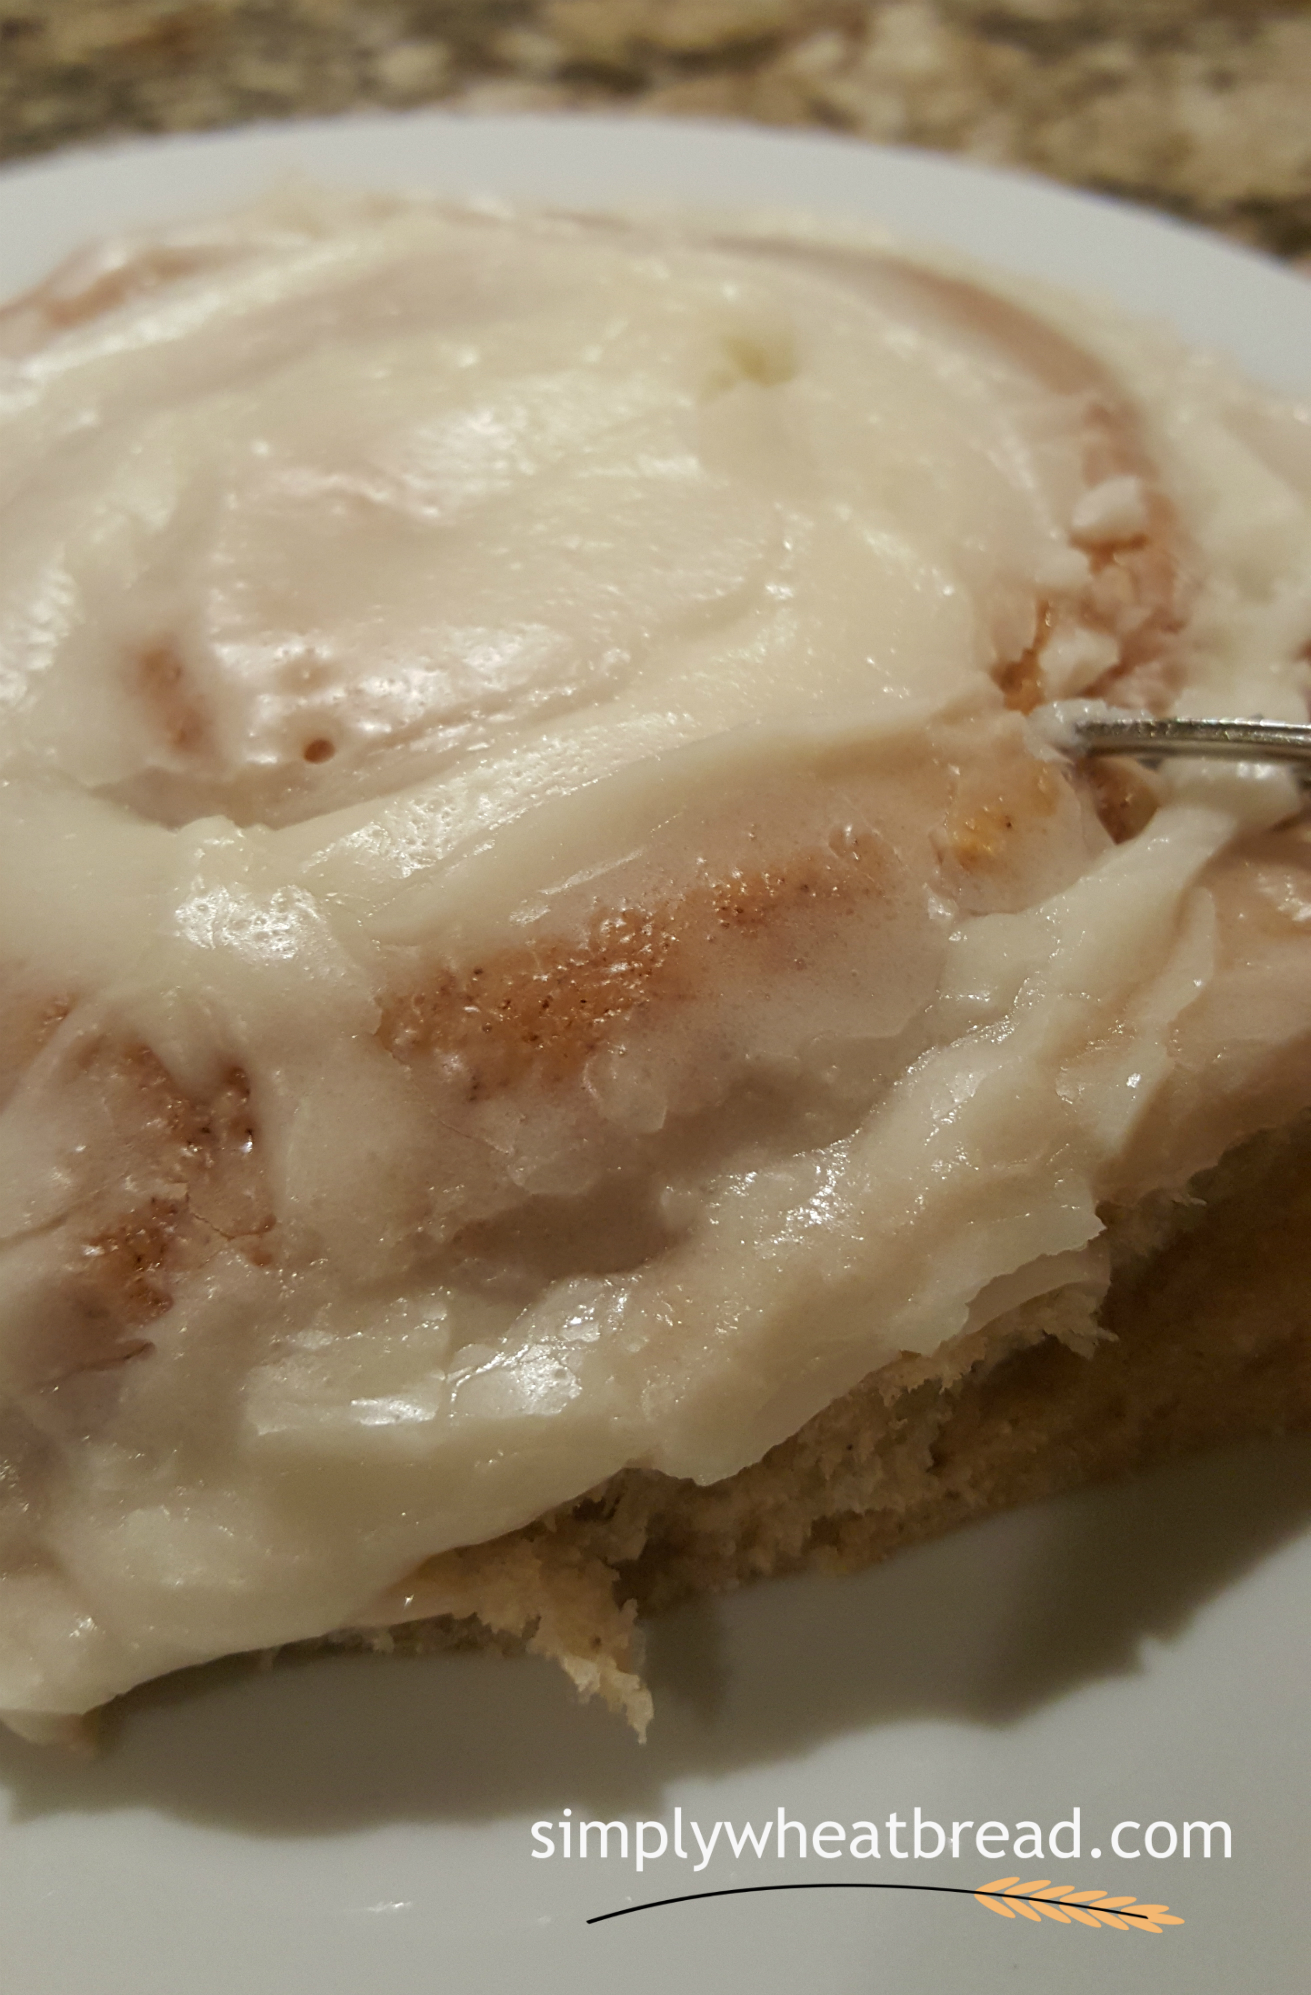 100% Whole Wheat Cinnamon Rolls - The Best You'll Ever Have!